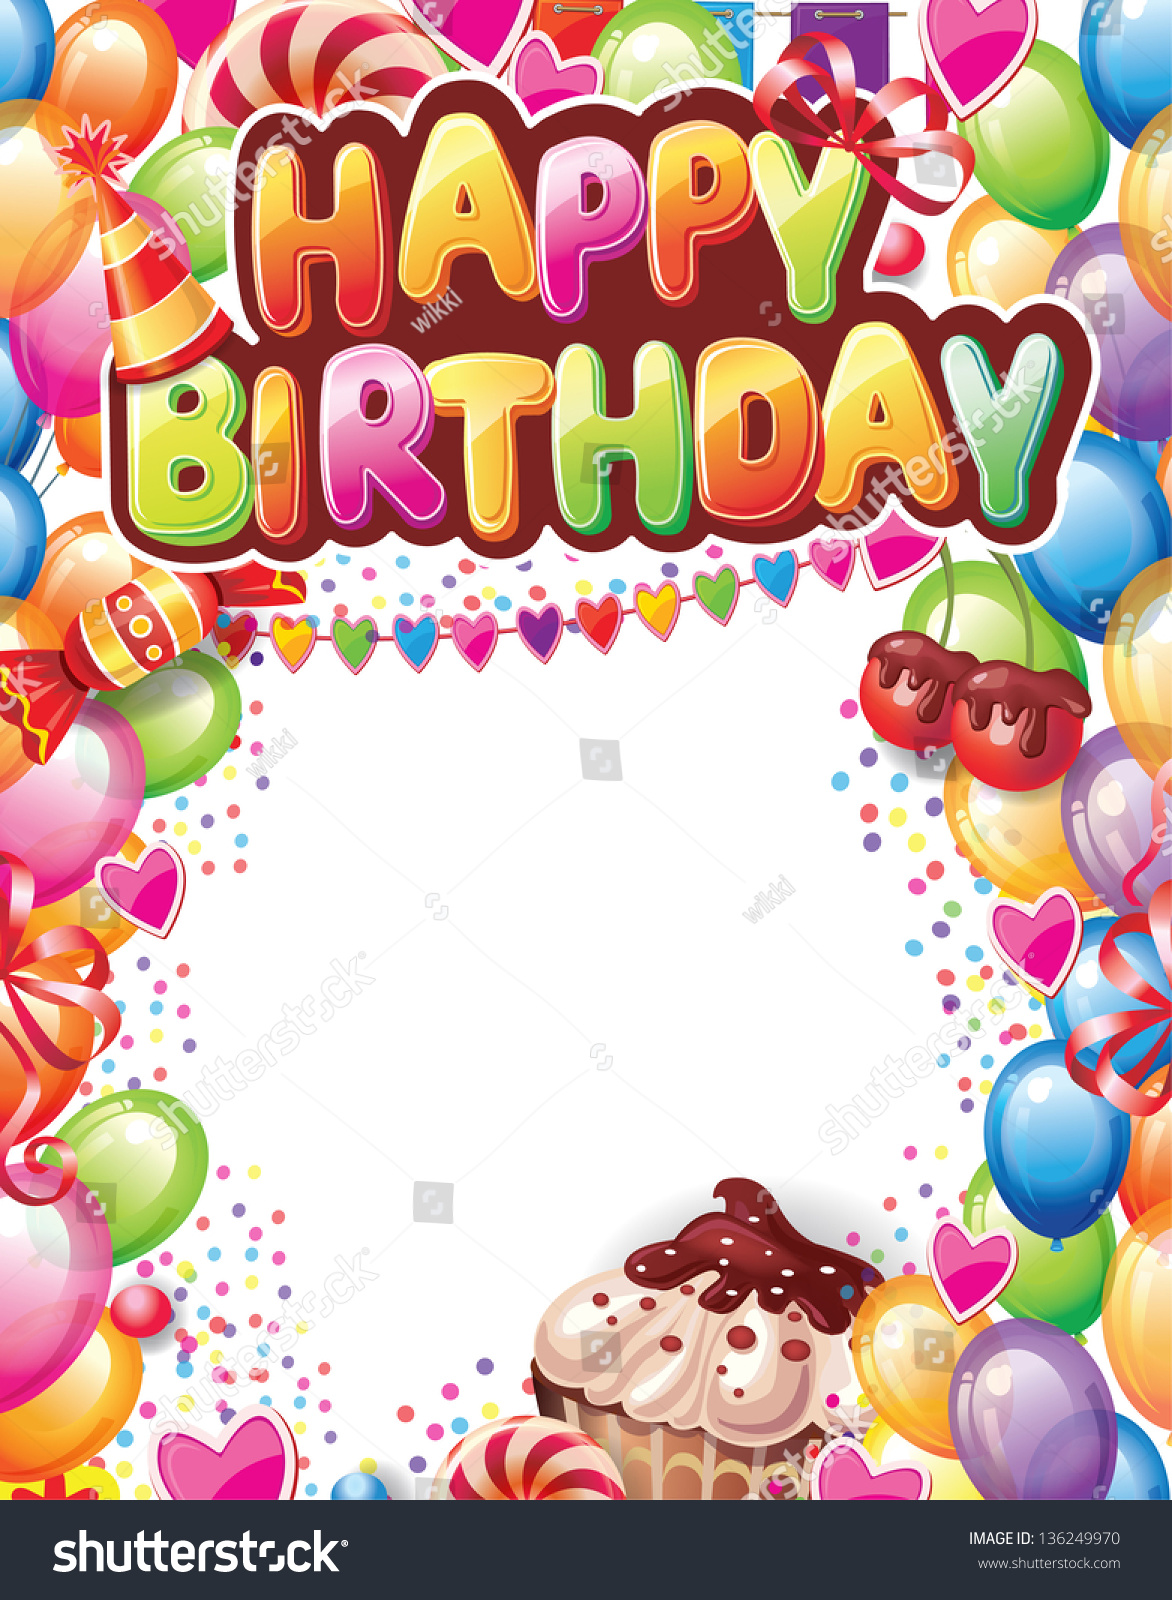 Template For Happy Birthday Card Stock Vector Illustration